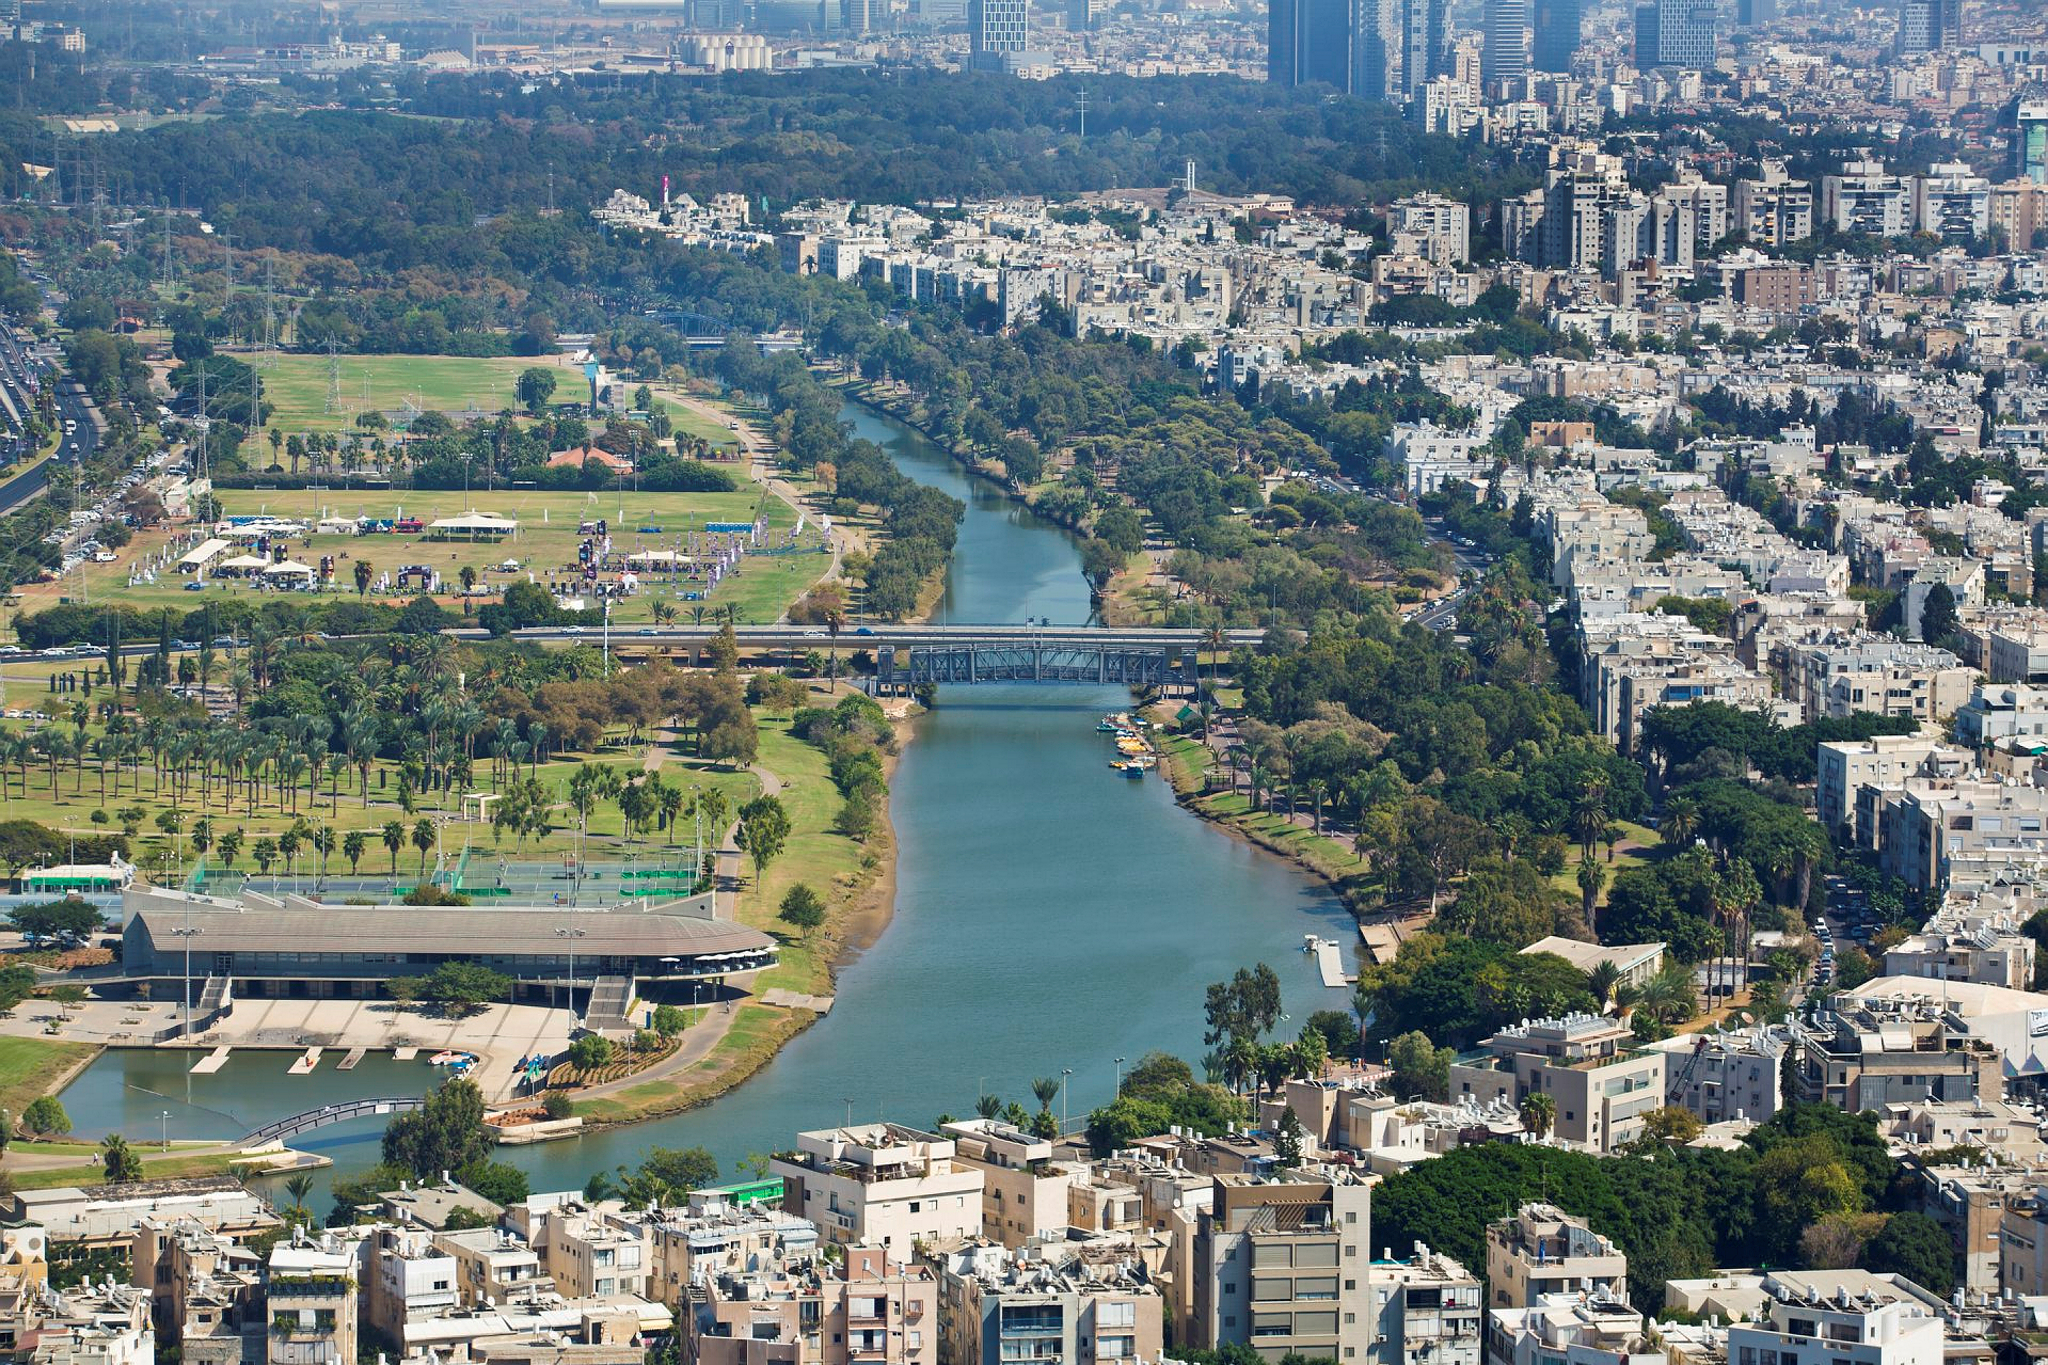 Yarkon Park in Tel Aviv. Photo by Moshe Shai/FLASH90